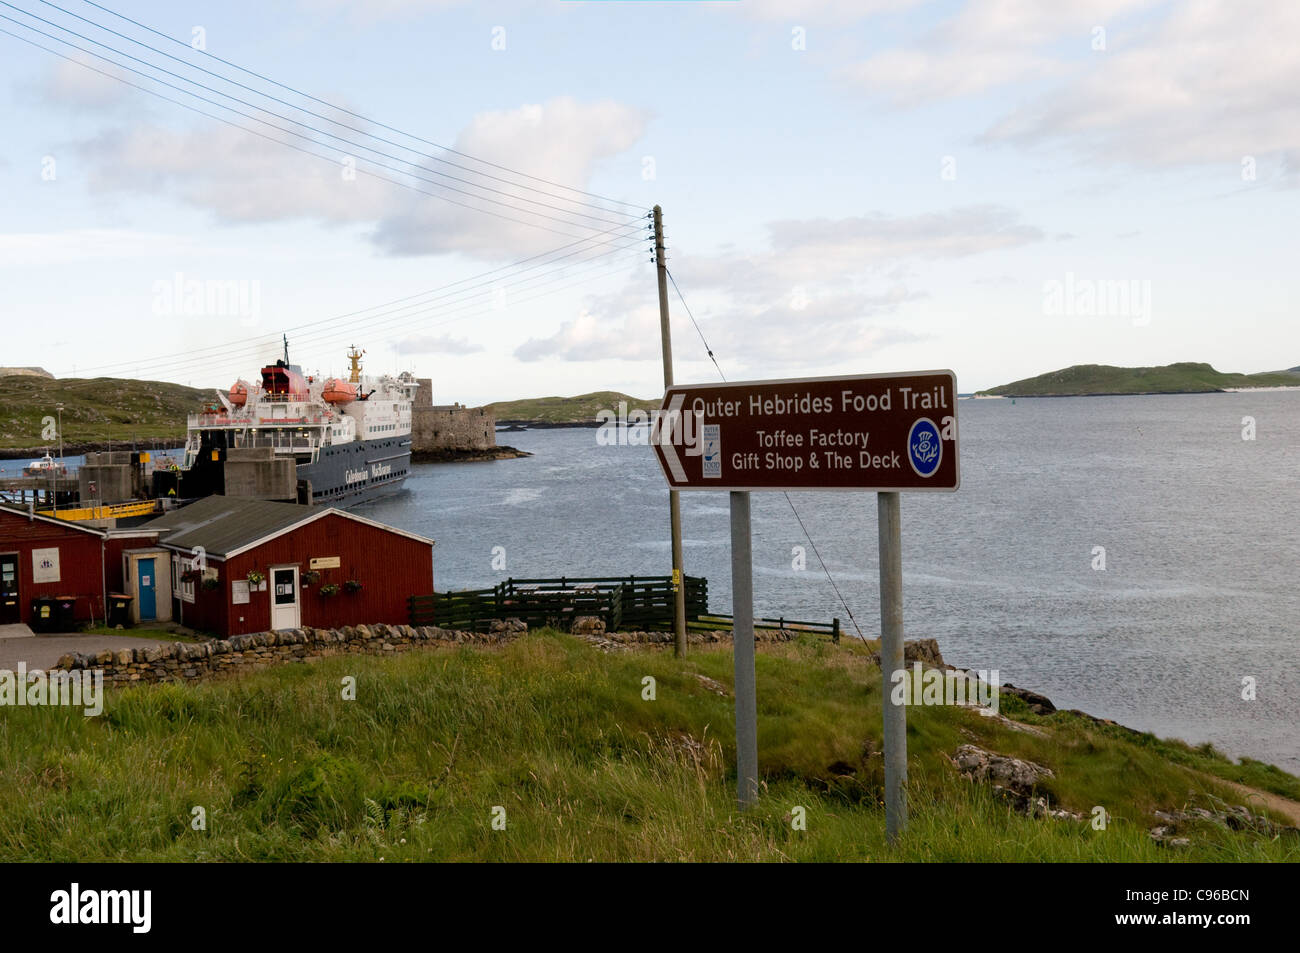 A sign in Castlebay on the island of Barra for the Outer Hebrides Food trail . The ferry MV Clansman is in the background - Stock Image